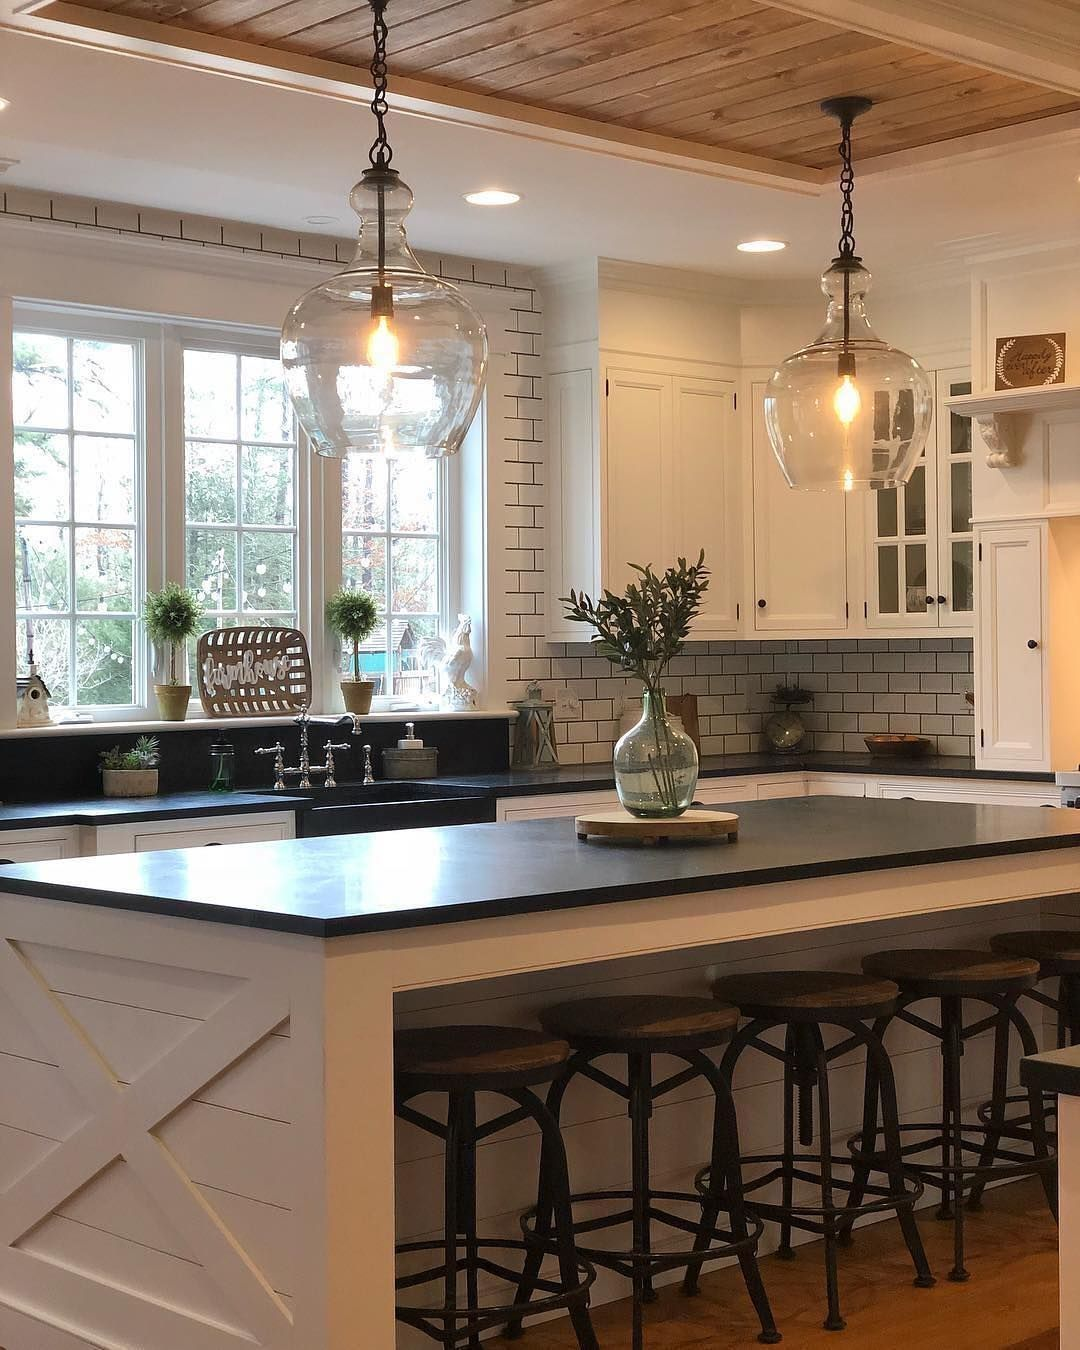 Unique Small Kitchen Island Ideas To Try: 30+ Enchanting Lighting Design Ideas For Modern Kitchen To